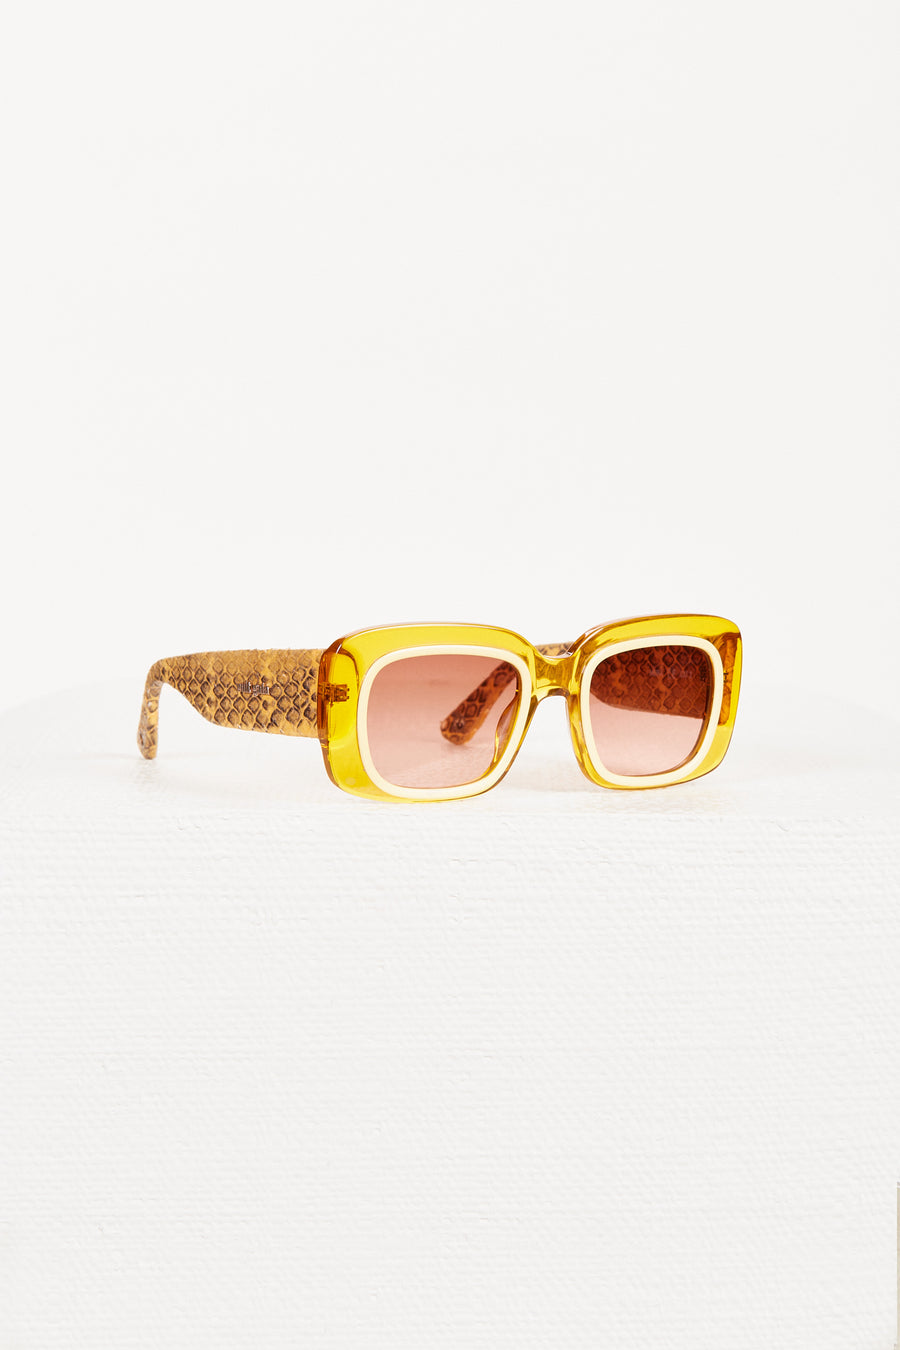 MEIRA SUNGLASSES - CANARY